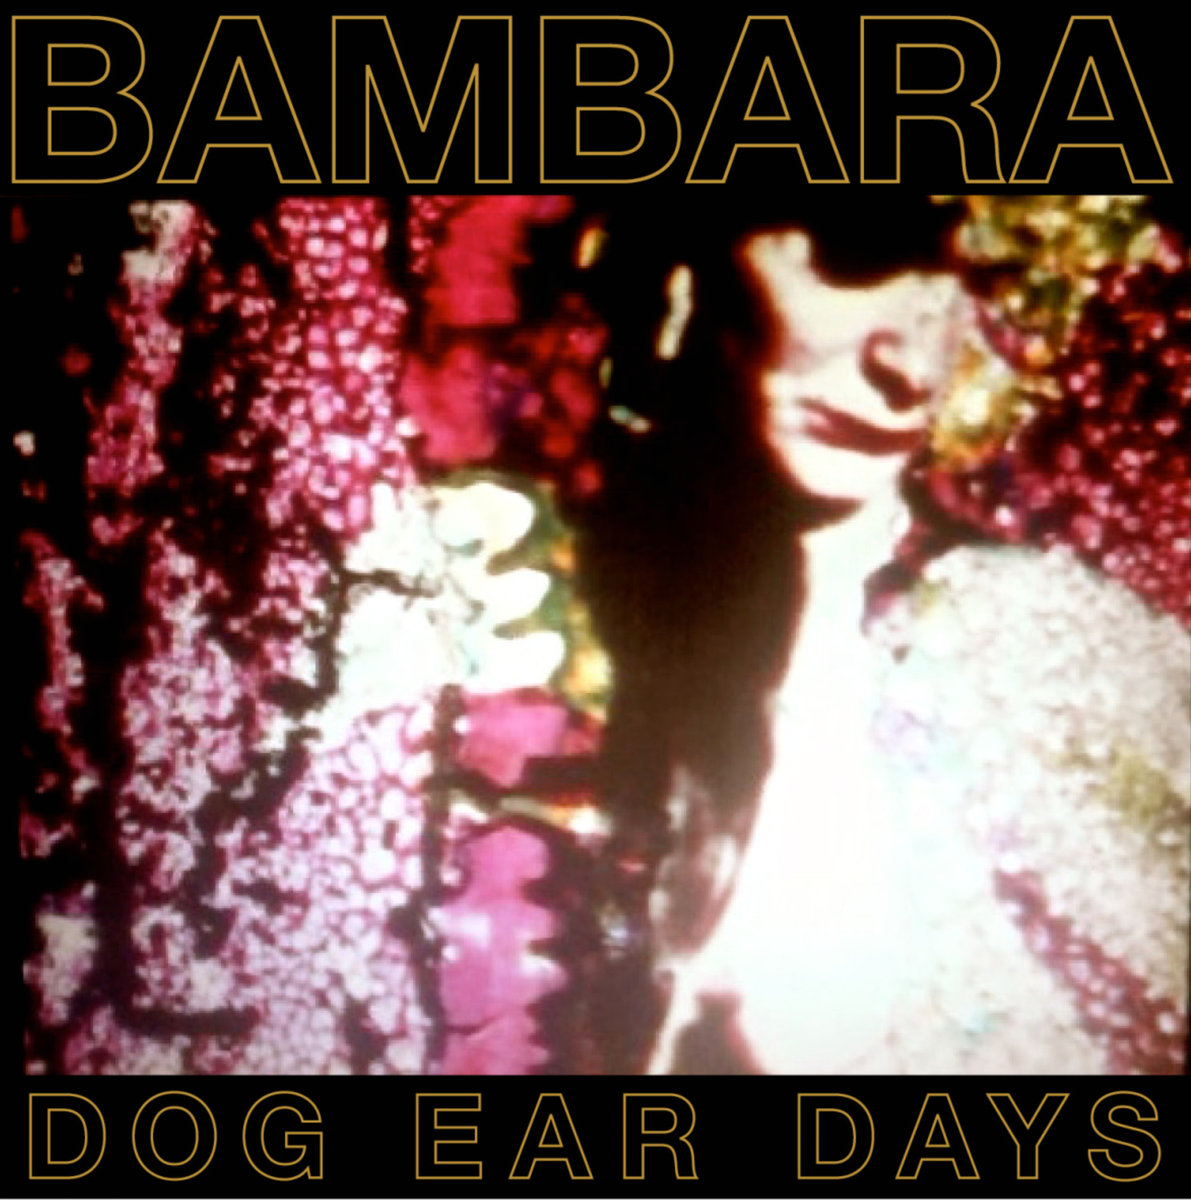 Bambara Dog Ear Days